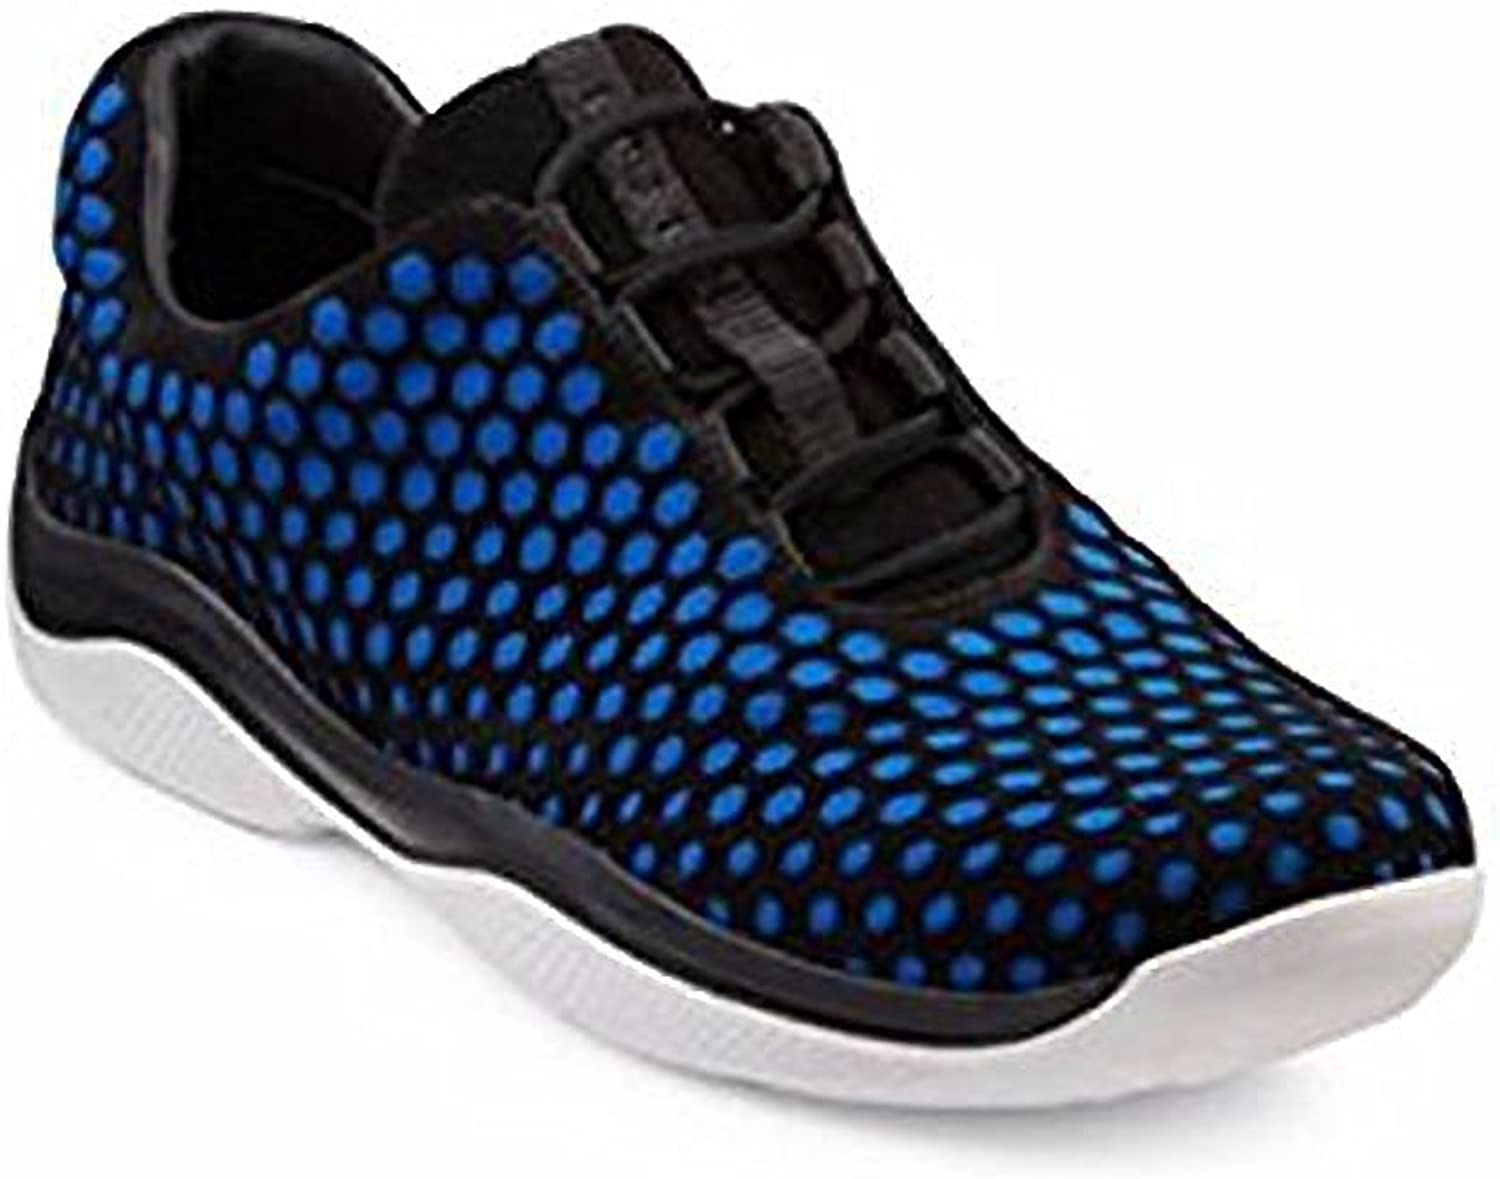 Prada Honeycomb Mesh & Nylon Sneakers shoes Size 41 bluee